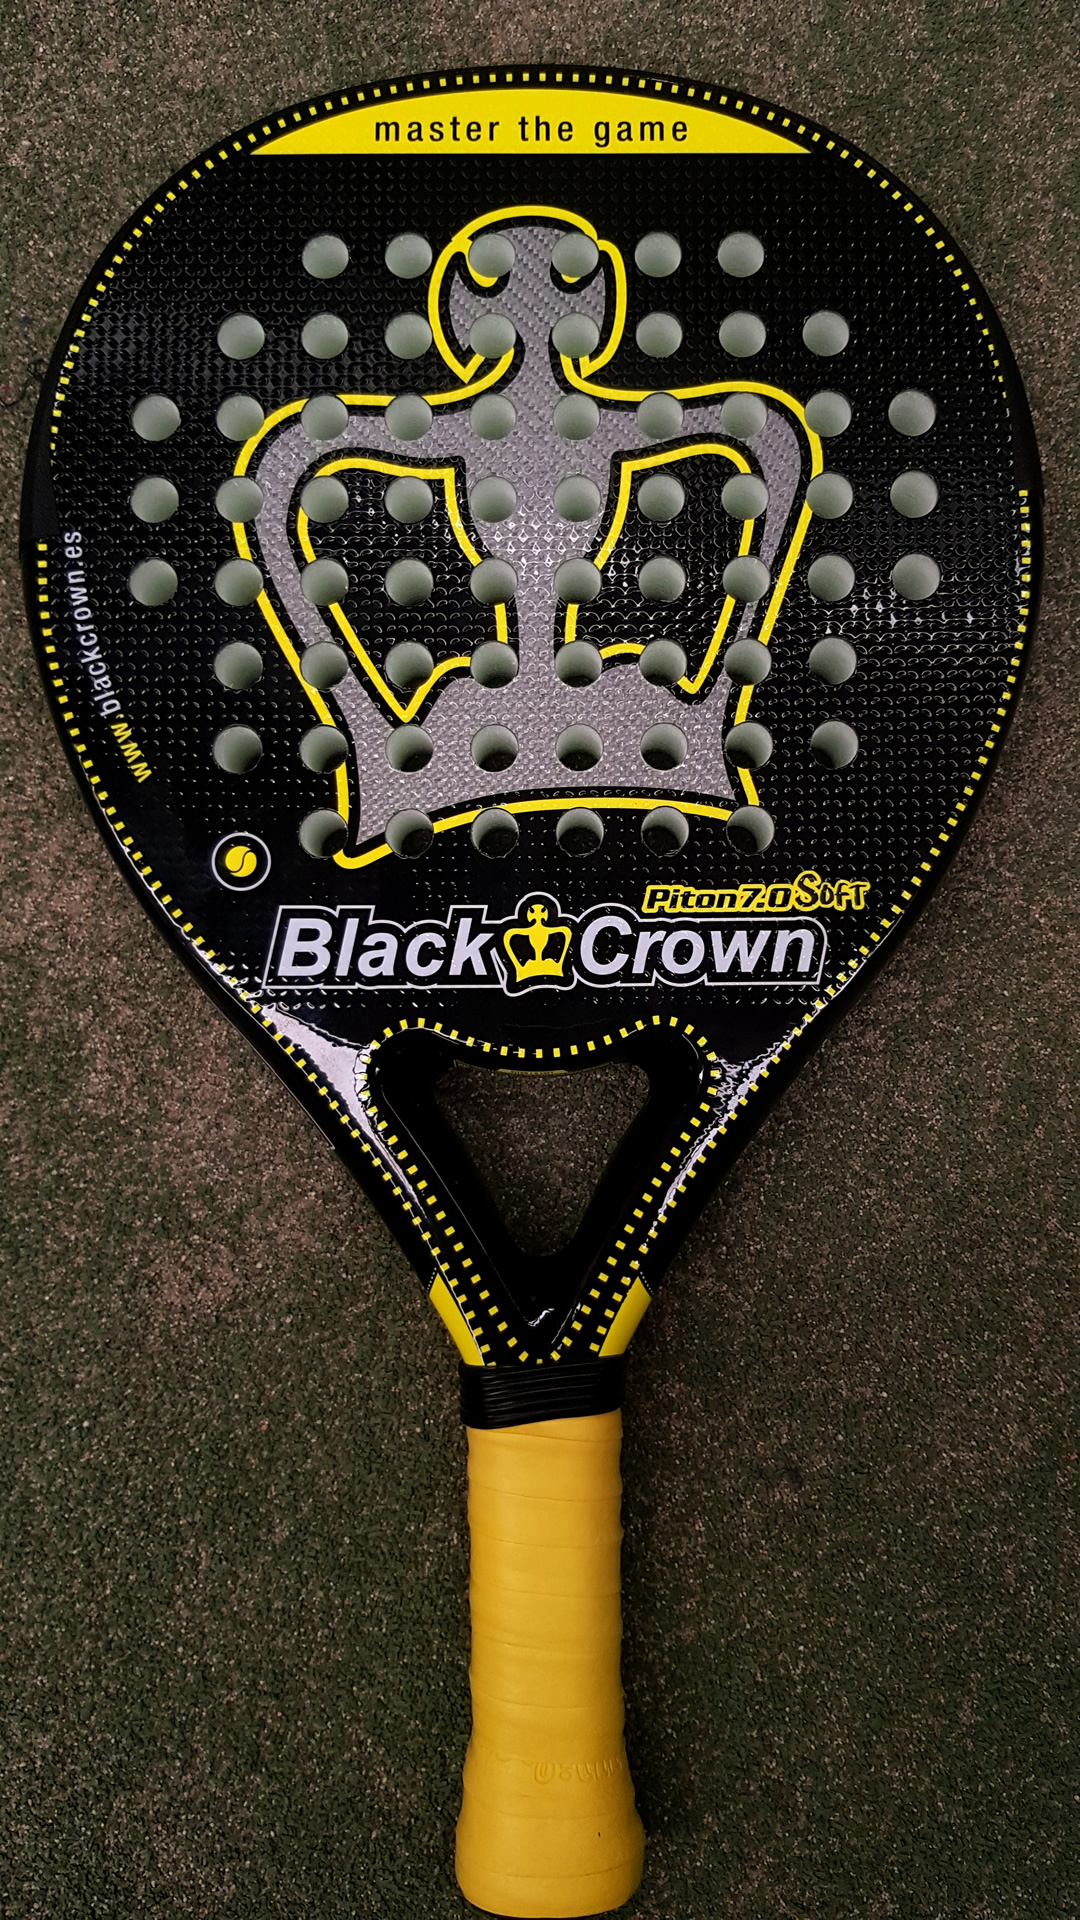 Black Crown Piton 7.0 Soft